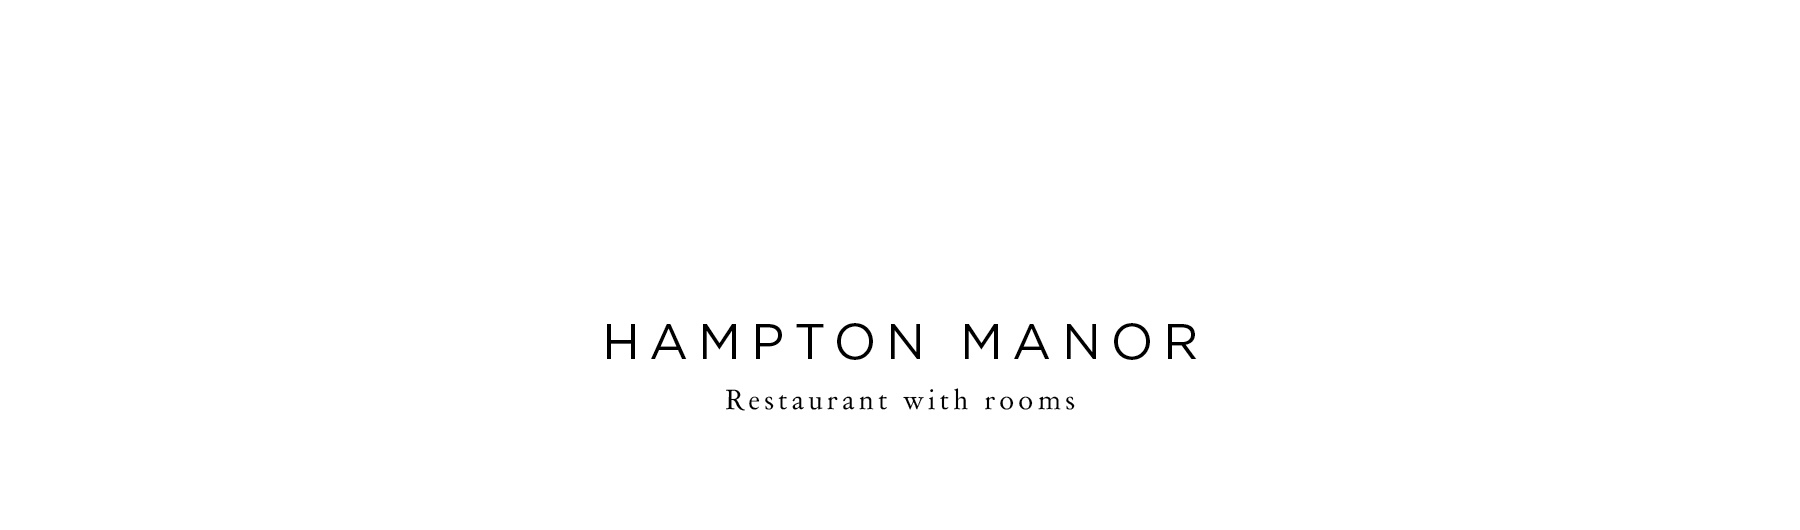 Hampton Manor.jpg